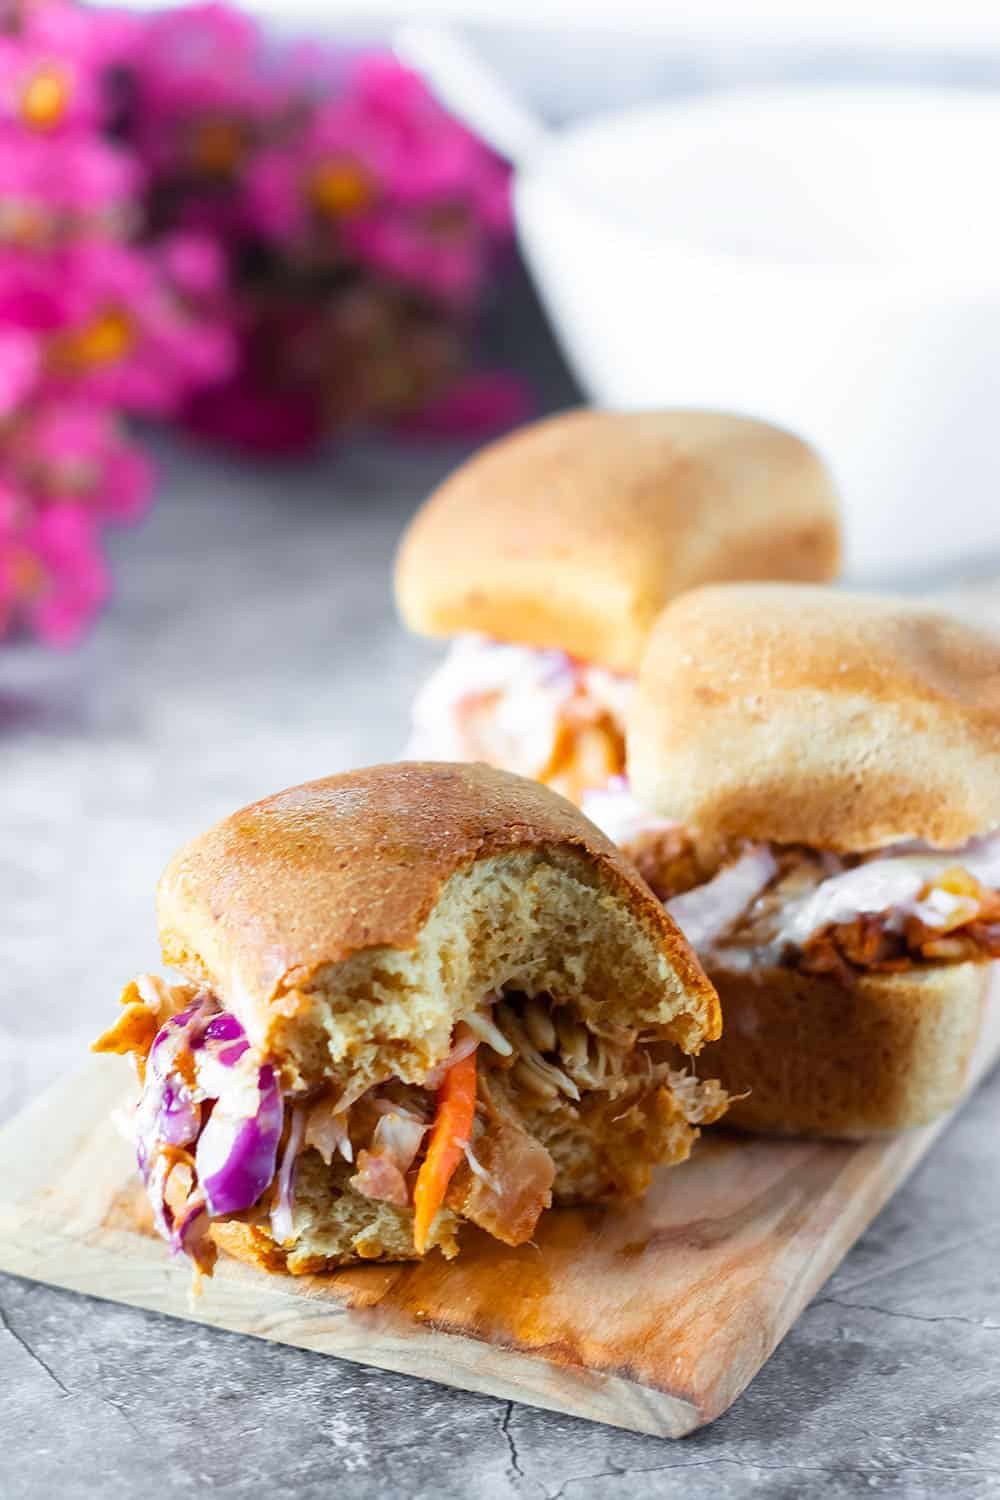 BBQ Jackfruit sandwiches, on a wooden cutting board, gluten free rolls topped with bbq jackfruit and coleslaw